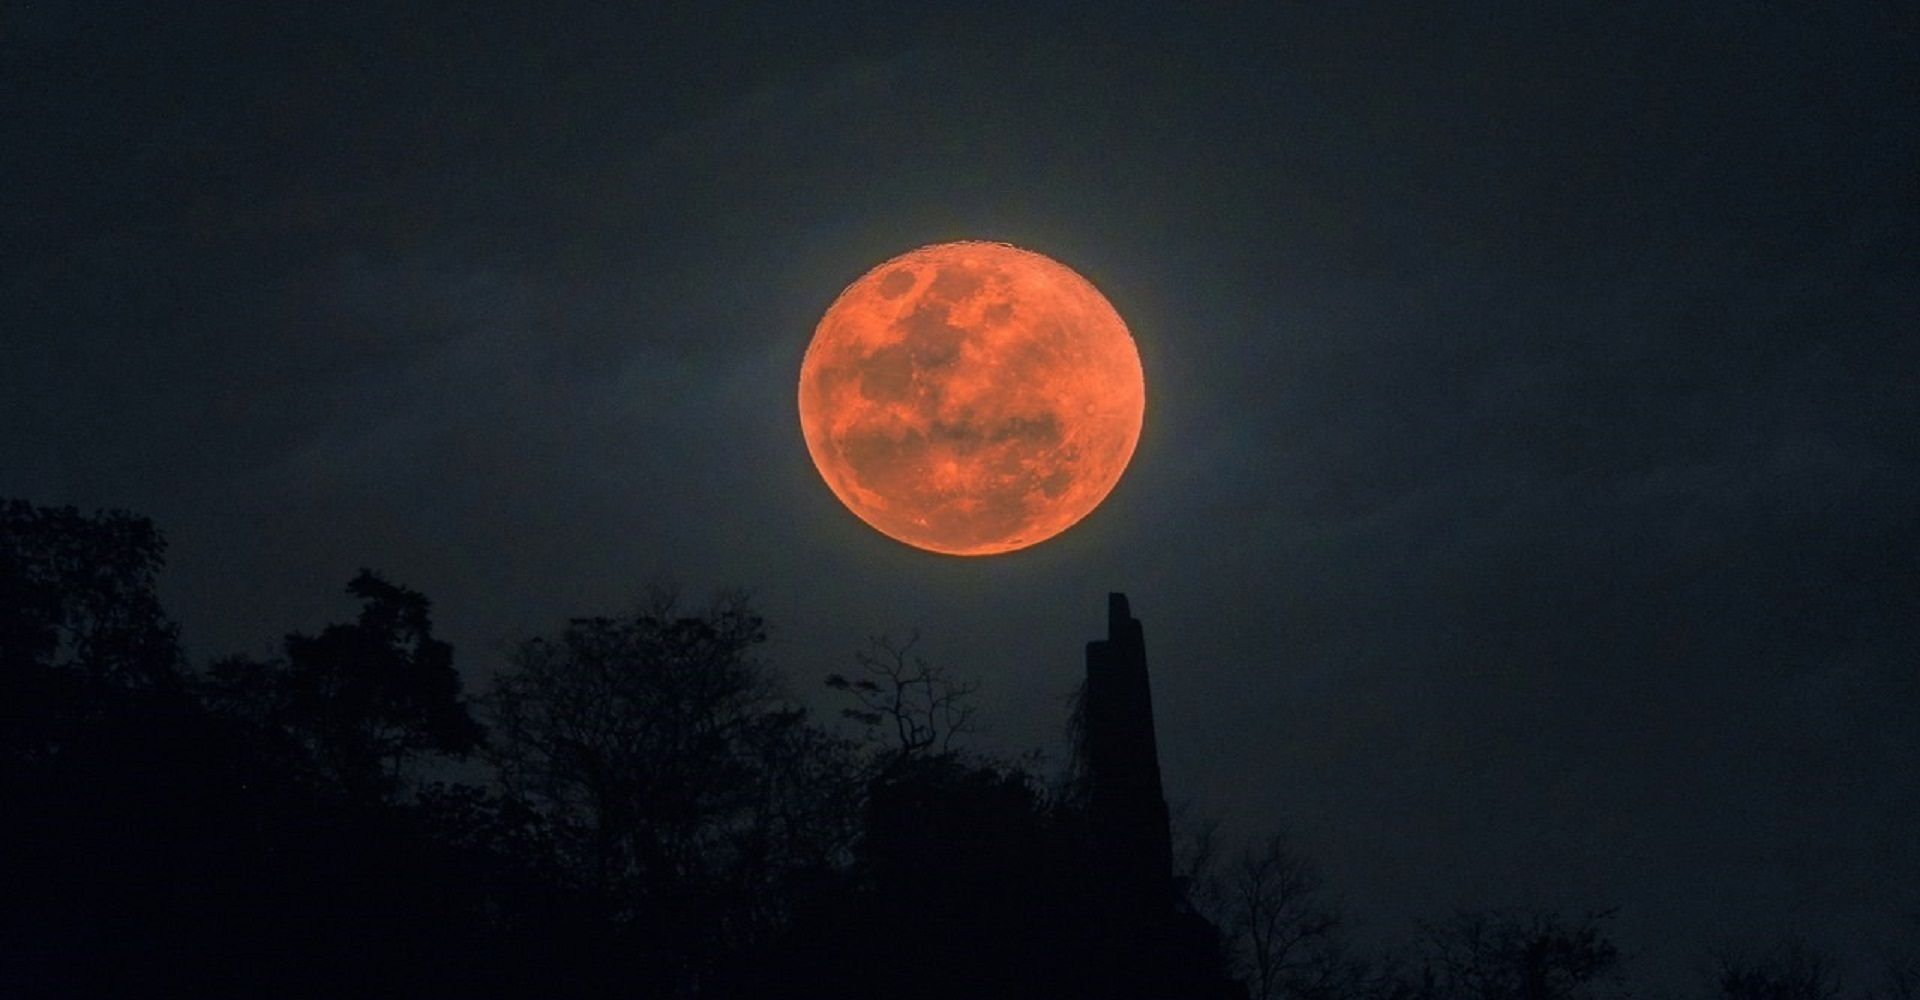 Rare Full Super Blood Wolf Moon on January 20-21, 2019